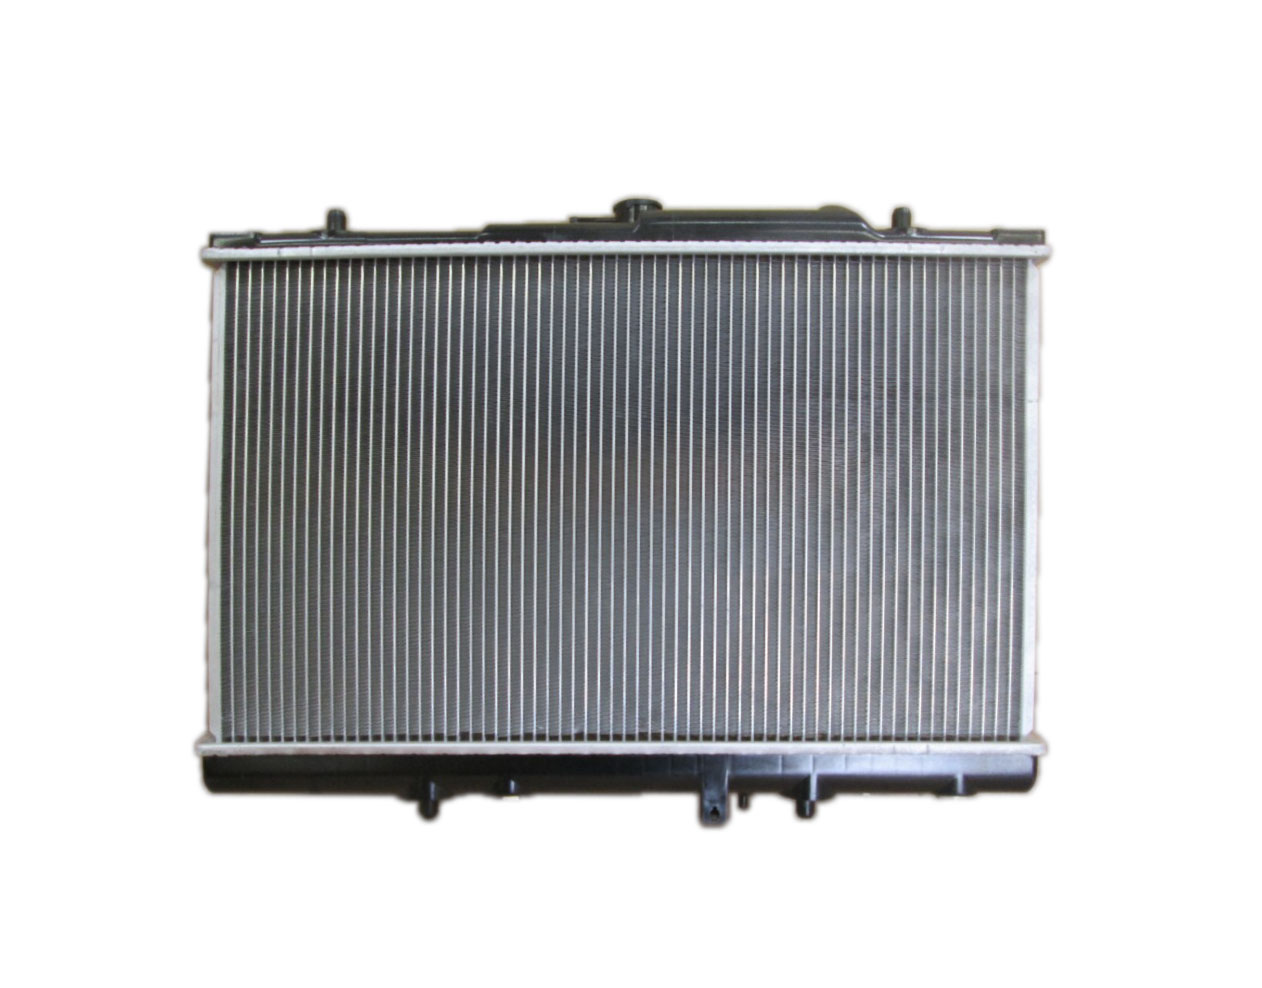 Aluminum Core Radiator OE Replacement for 97-99 Mit Montero Sport AT dpi-2073